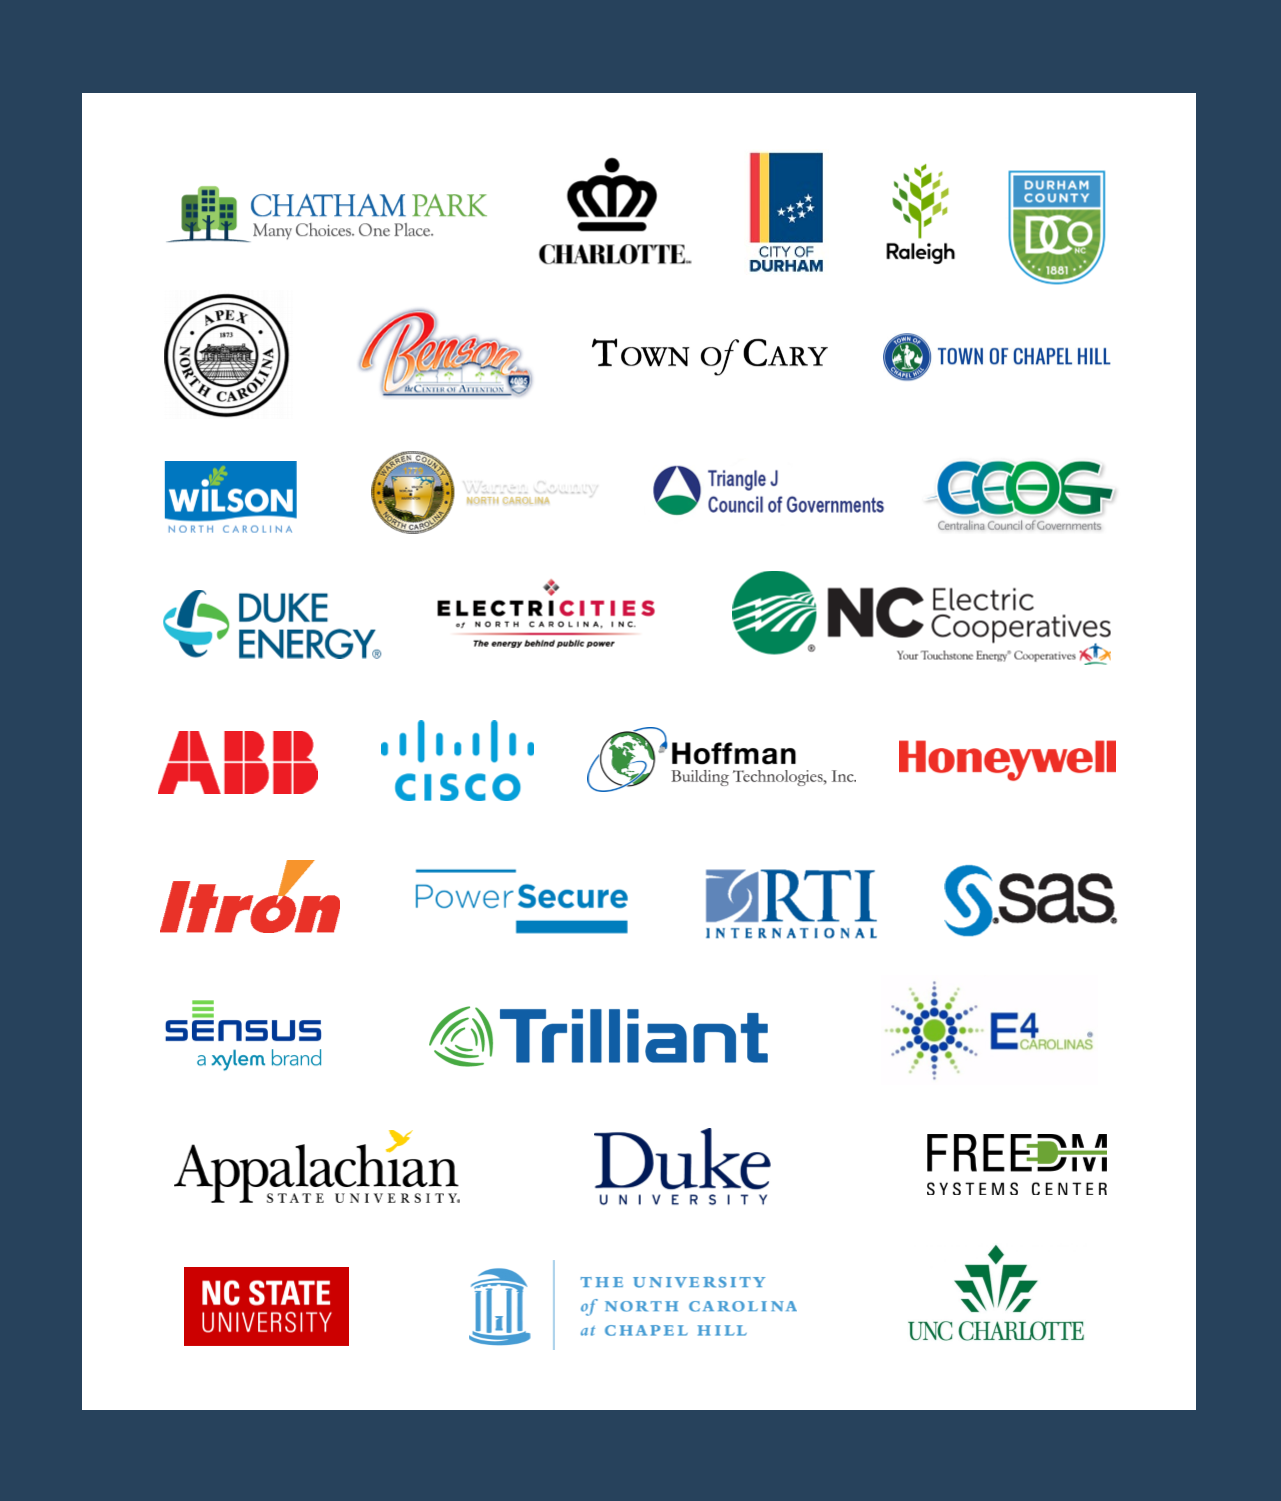 Corridor Partners - Meet the 100+ stakeholders from government, industry, academia, nonprofit agencies, and more - all actively engaged in the Corridor.Learn more